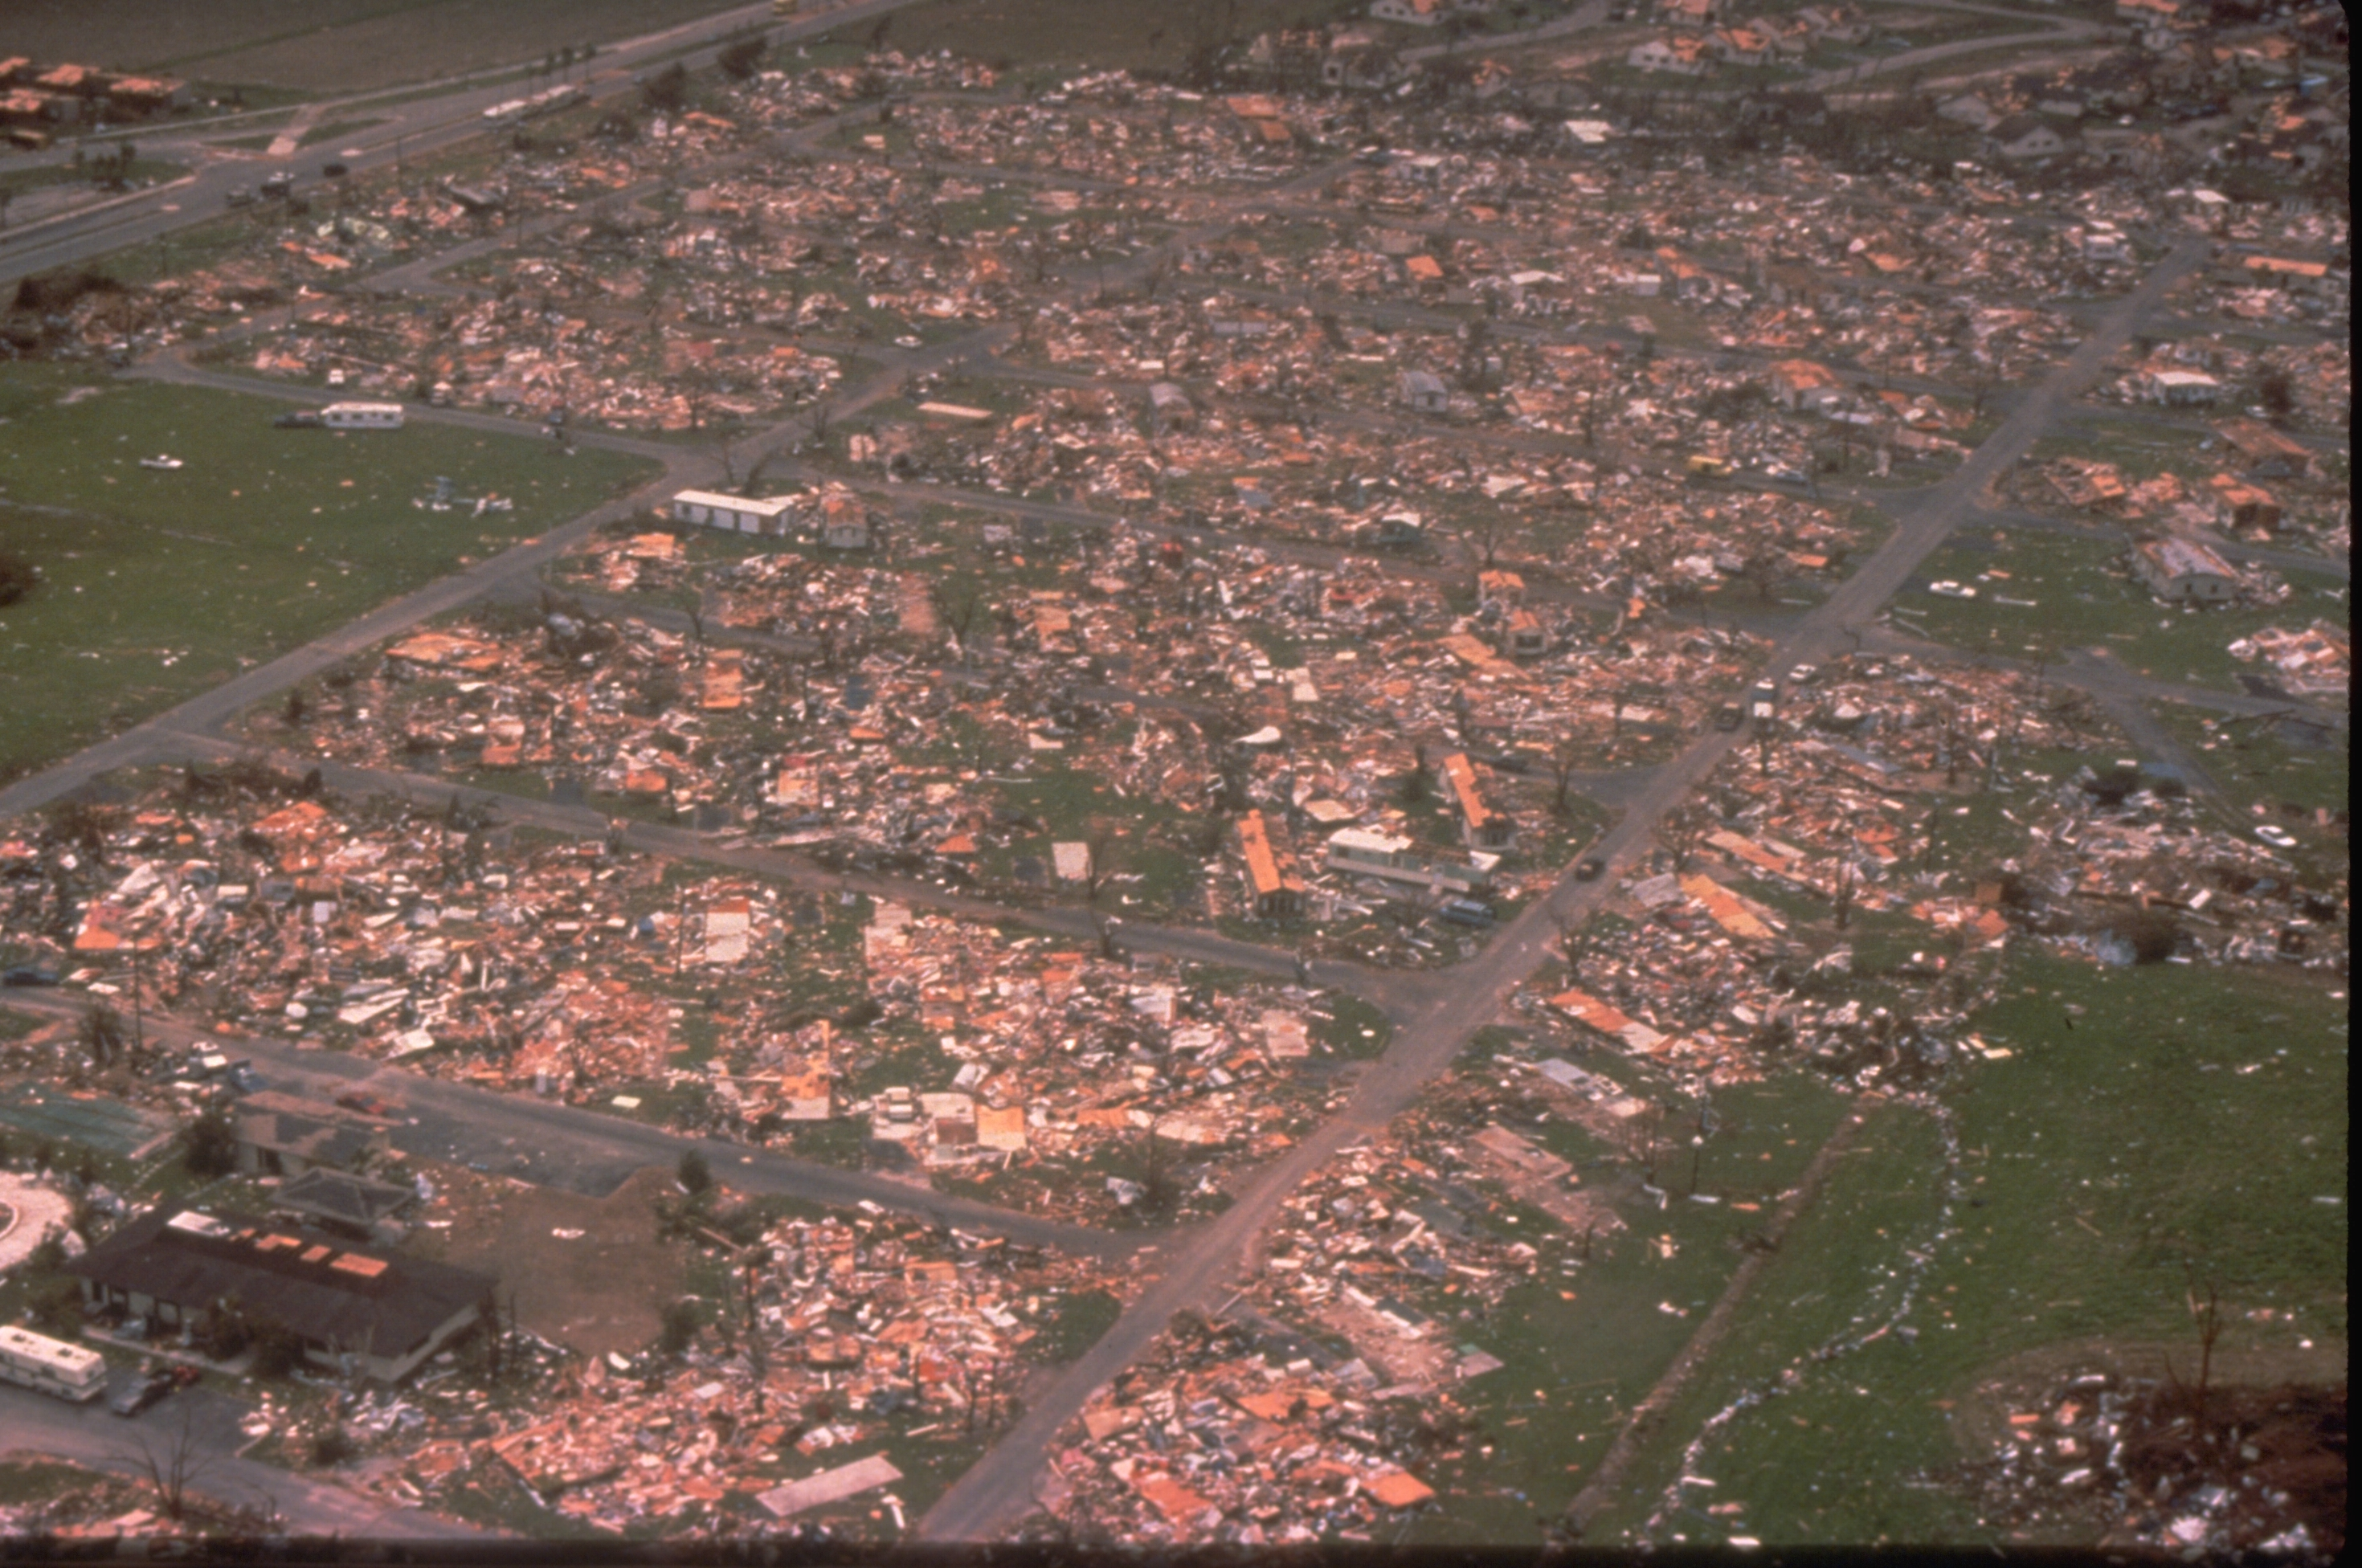 An aerial view ofDade County, Florida, shows the damage Hurricane Andrewwrought on a mobile home park when it struck in a large mobile home park in mid August, 1992. One million people were evacuated and 54 died in the hurricane. (Bob Epstein/FEMA News Photo/via Wikimedia Commons)